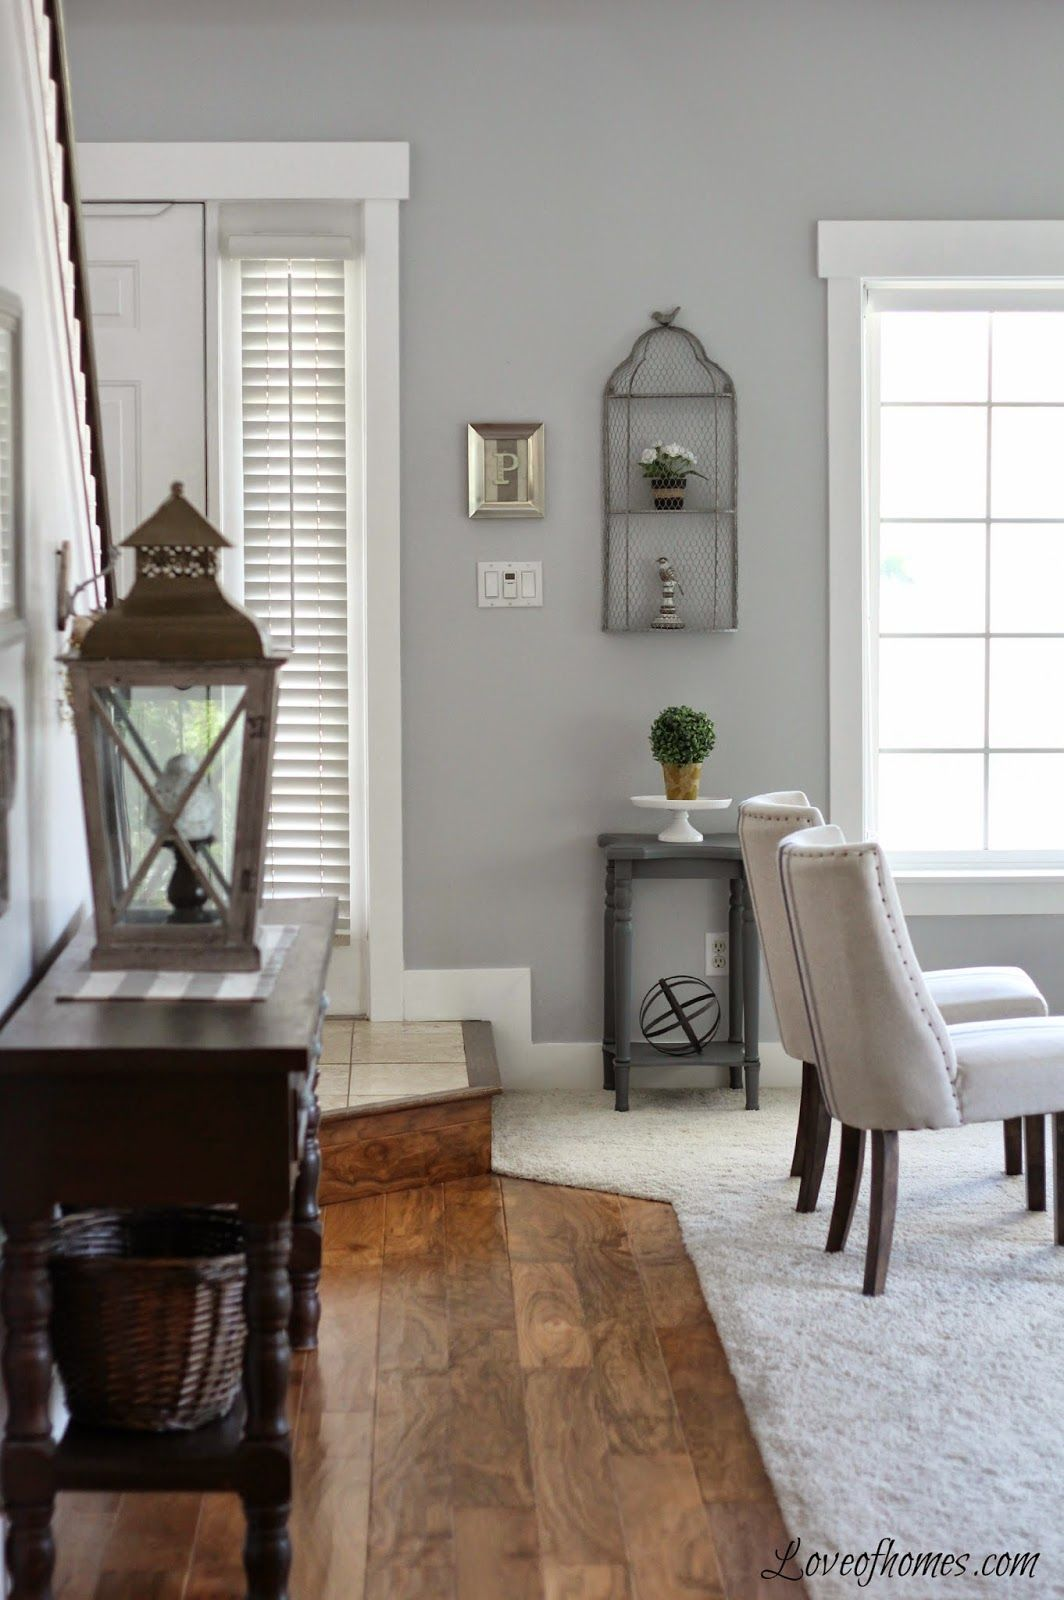 living room paint color benjamin moore pelican grey grey on interior paint color schemes ideas id=68903